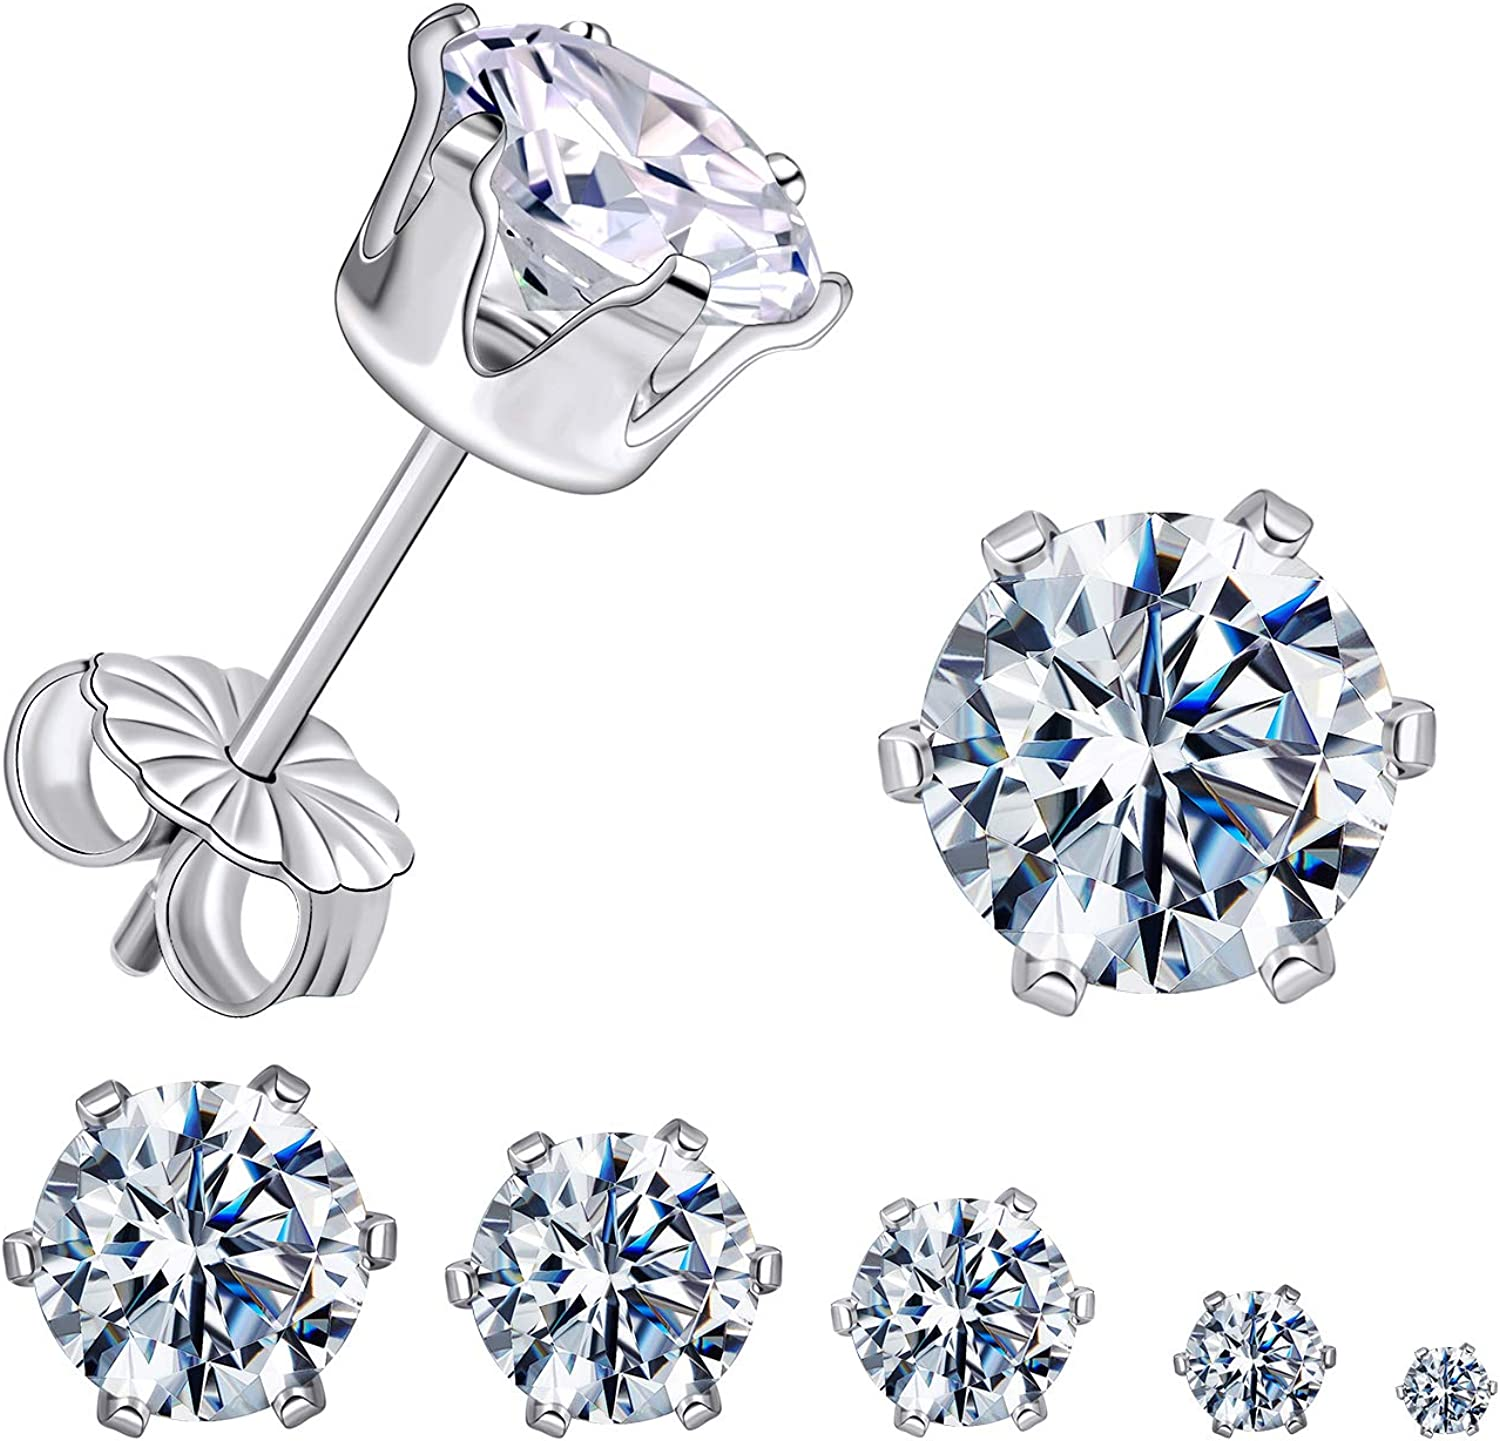 GEMSME 925 Sterling Sliver Round Cubic Zirconia Stud Earrings Women Men Sparkly Jewelry Pack of 5